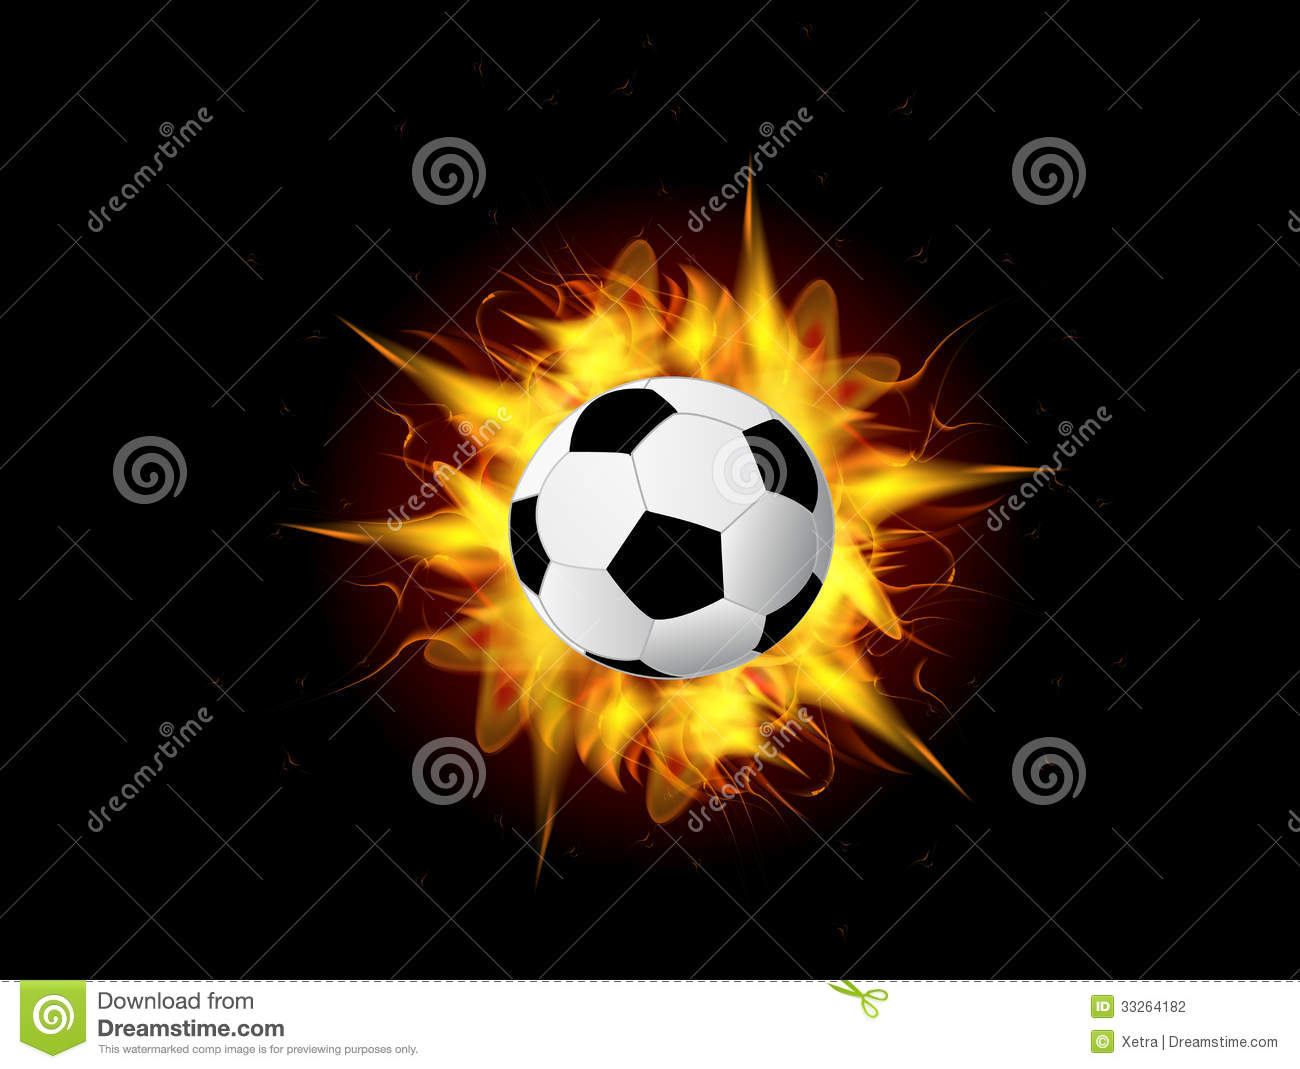 Animated Fireplace Wallpaper Vector Soccer Ball In Fire Flame Vector Illustration